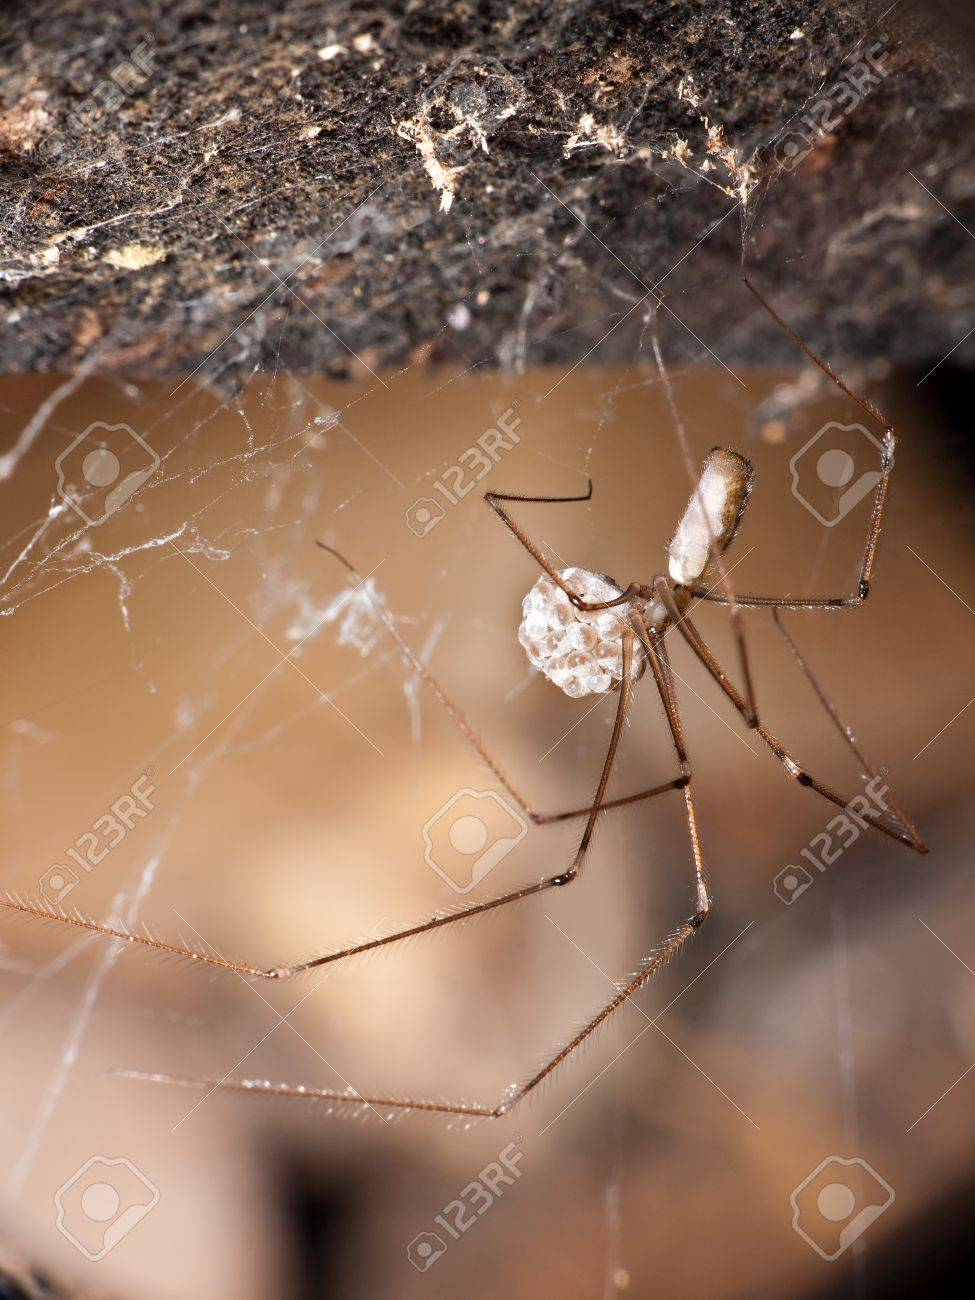 Daddy longlegs spider in web with eggs - macro, Pholcus phalangioides Stock Photo - 9687027